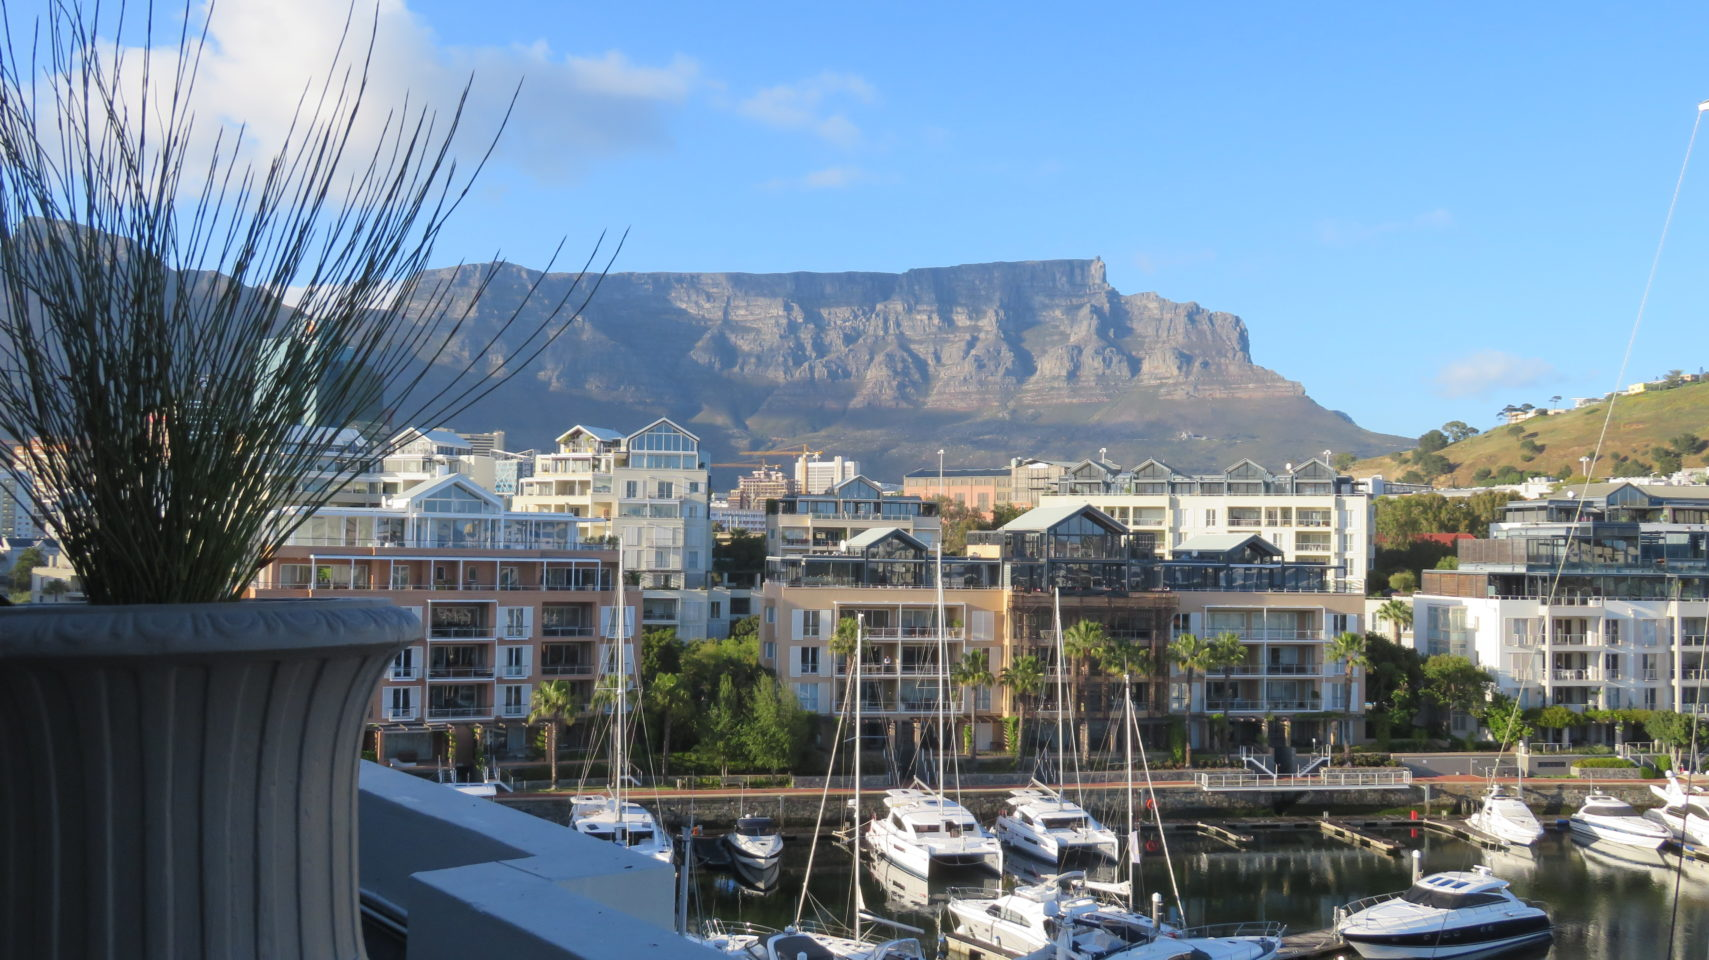 View of Table Mountain from our guestroom balcony at the Cape Grace Hotel